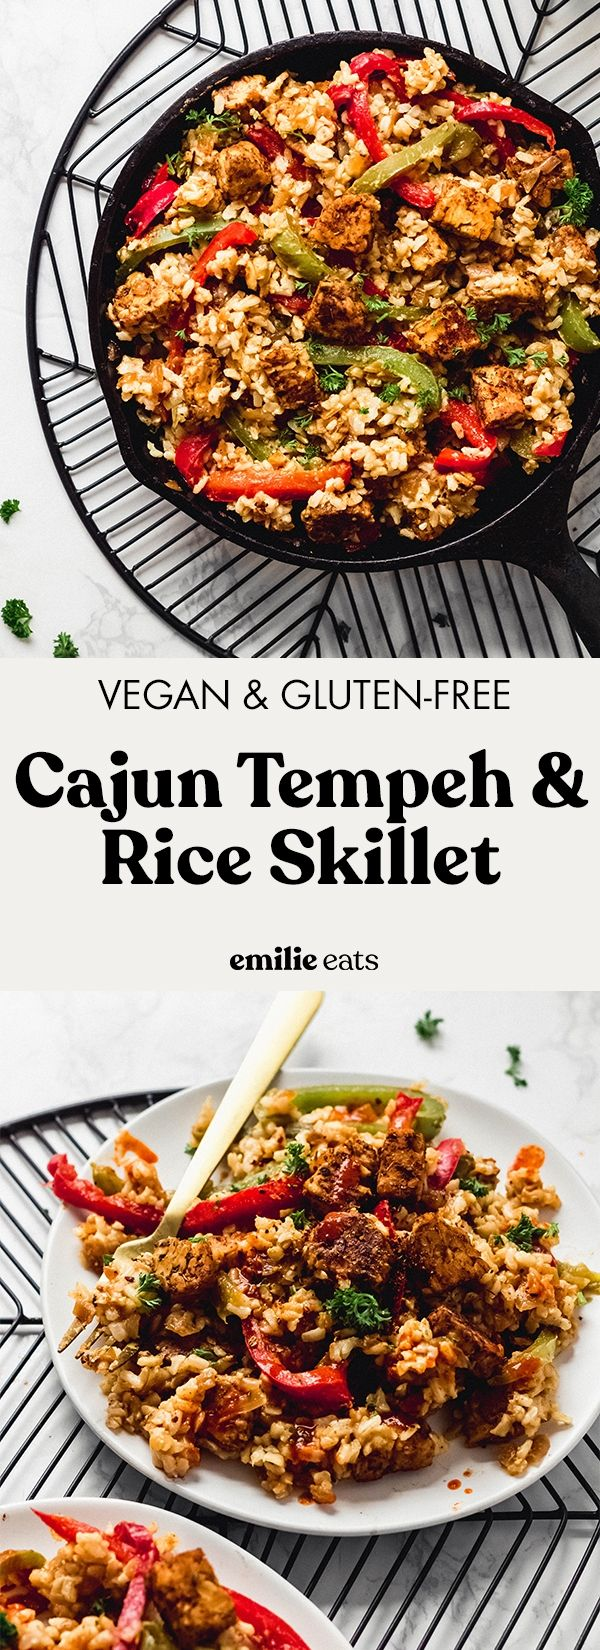 Cajun Rice And Fried Tempeh Skillet Emilie Eats Recipe Weeknight Dinner Recipes Easy Tempeh Weeknight Dinner Recipe